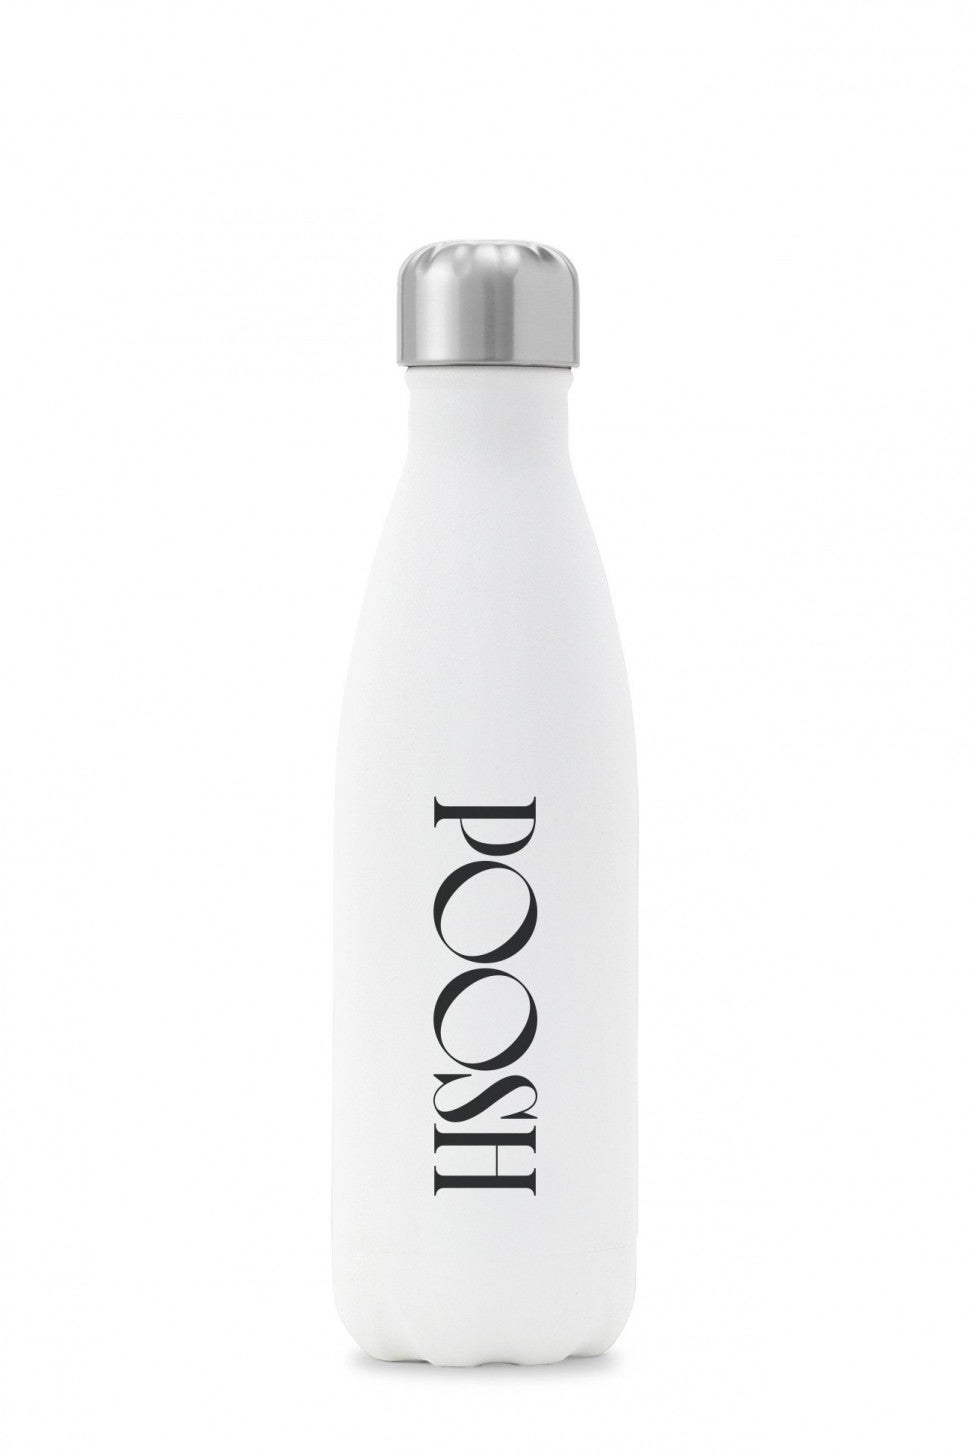 Poosh x S'well water bottle